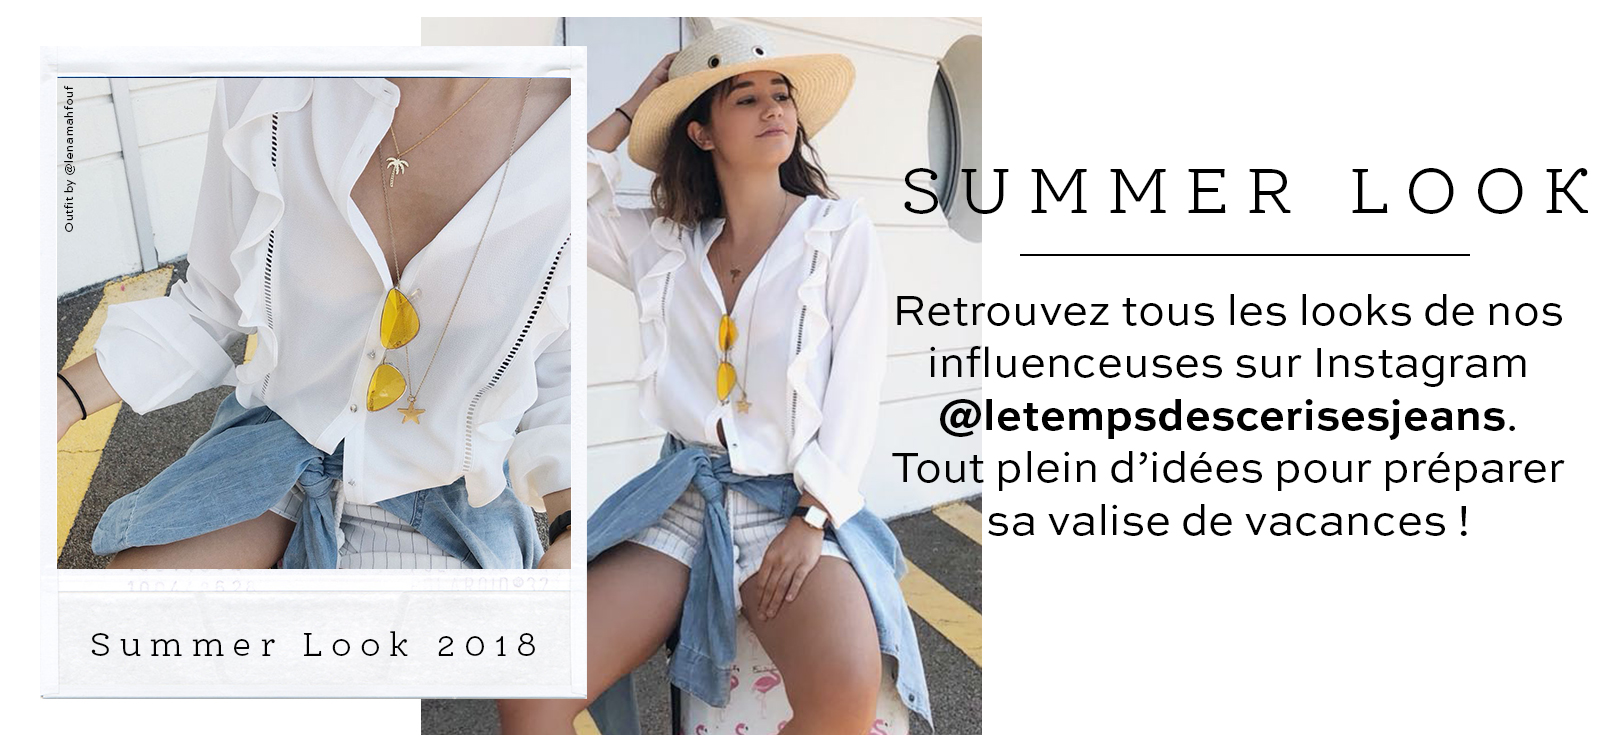 Summer look - influenceuse